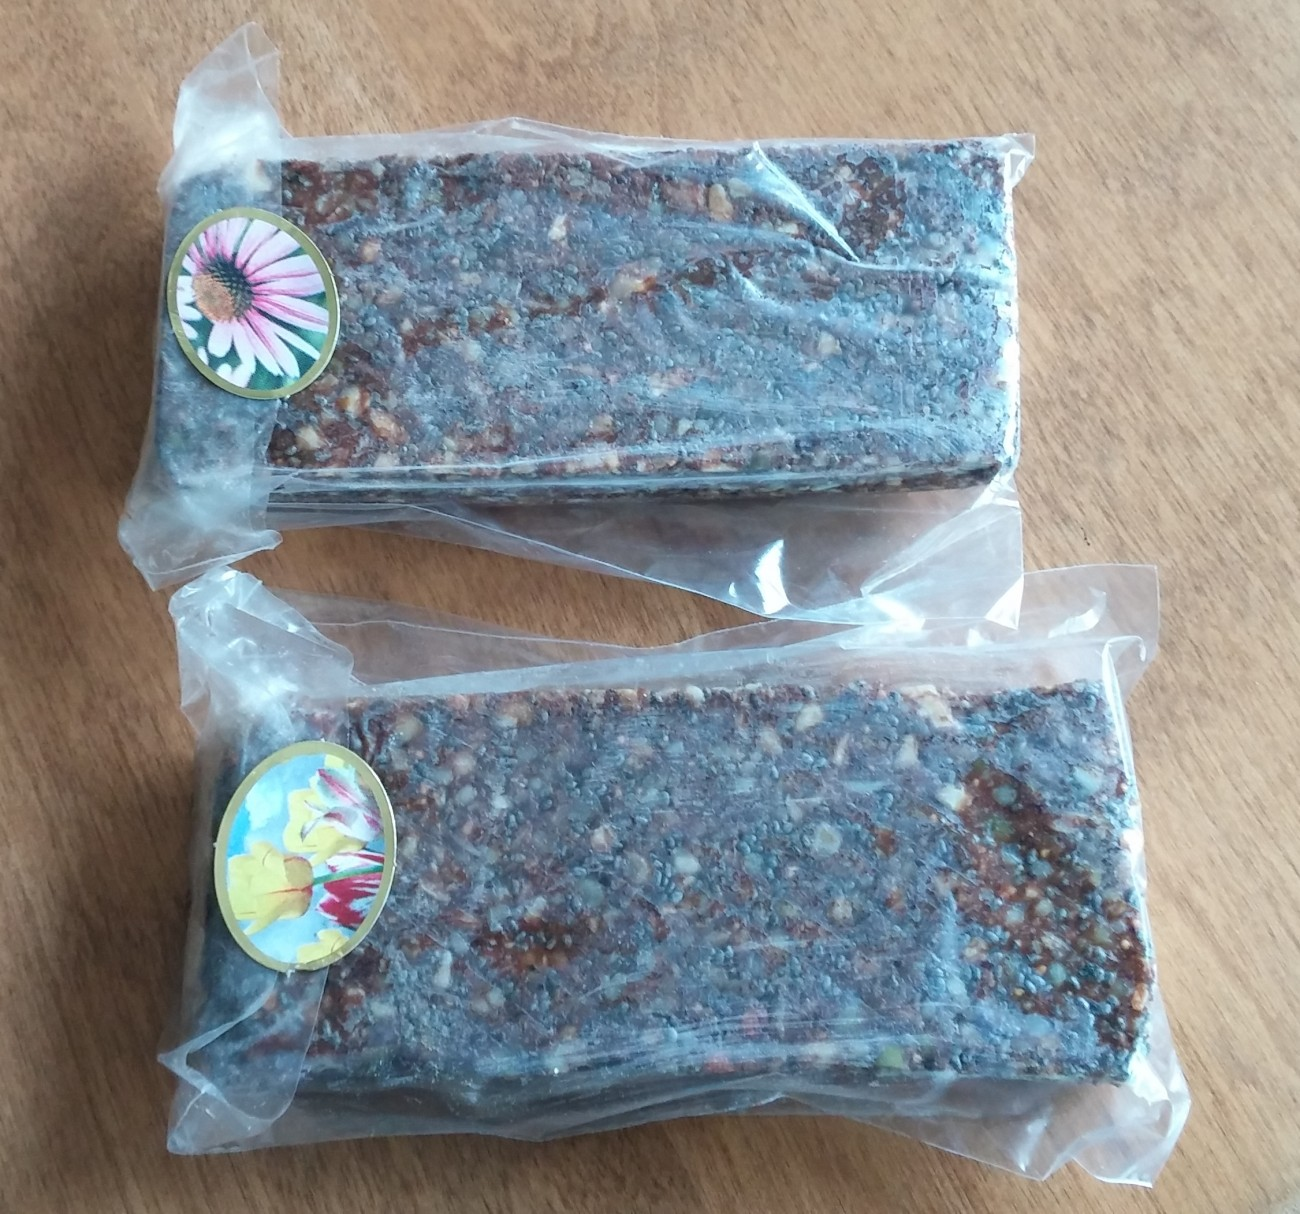 indiv energy bars